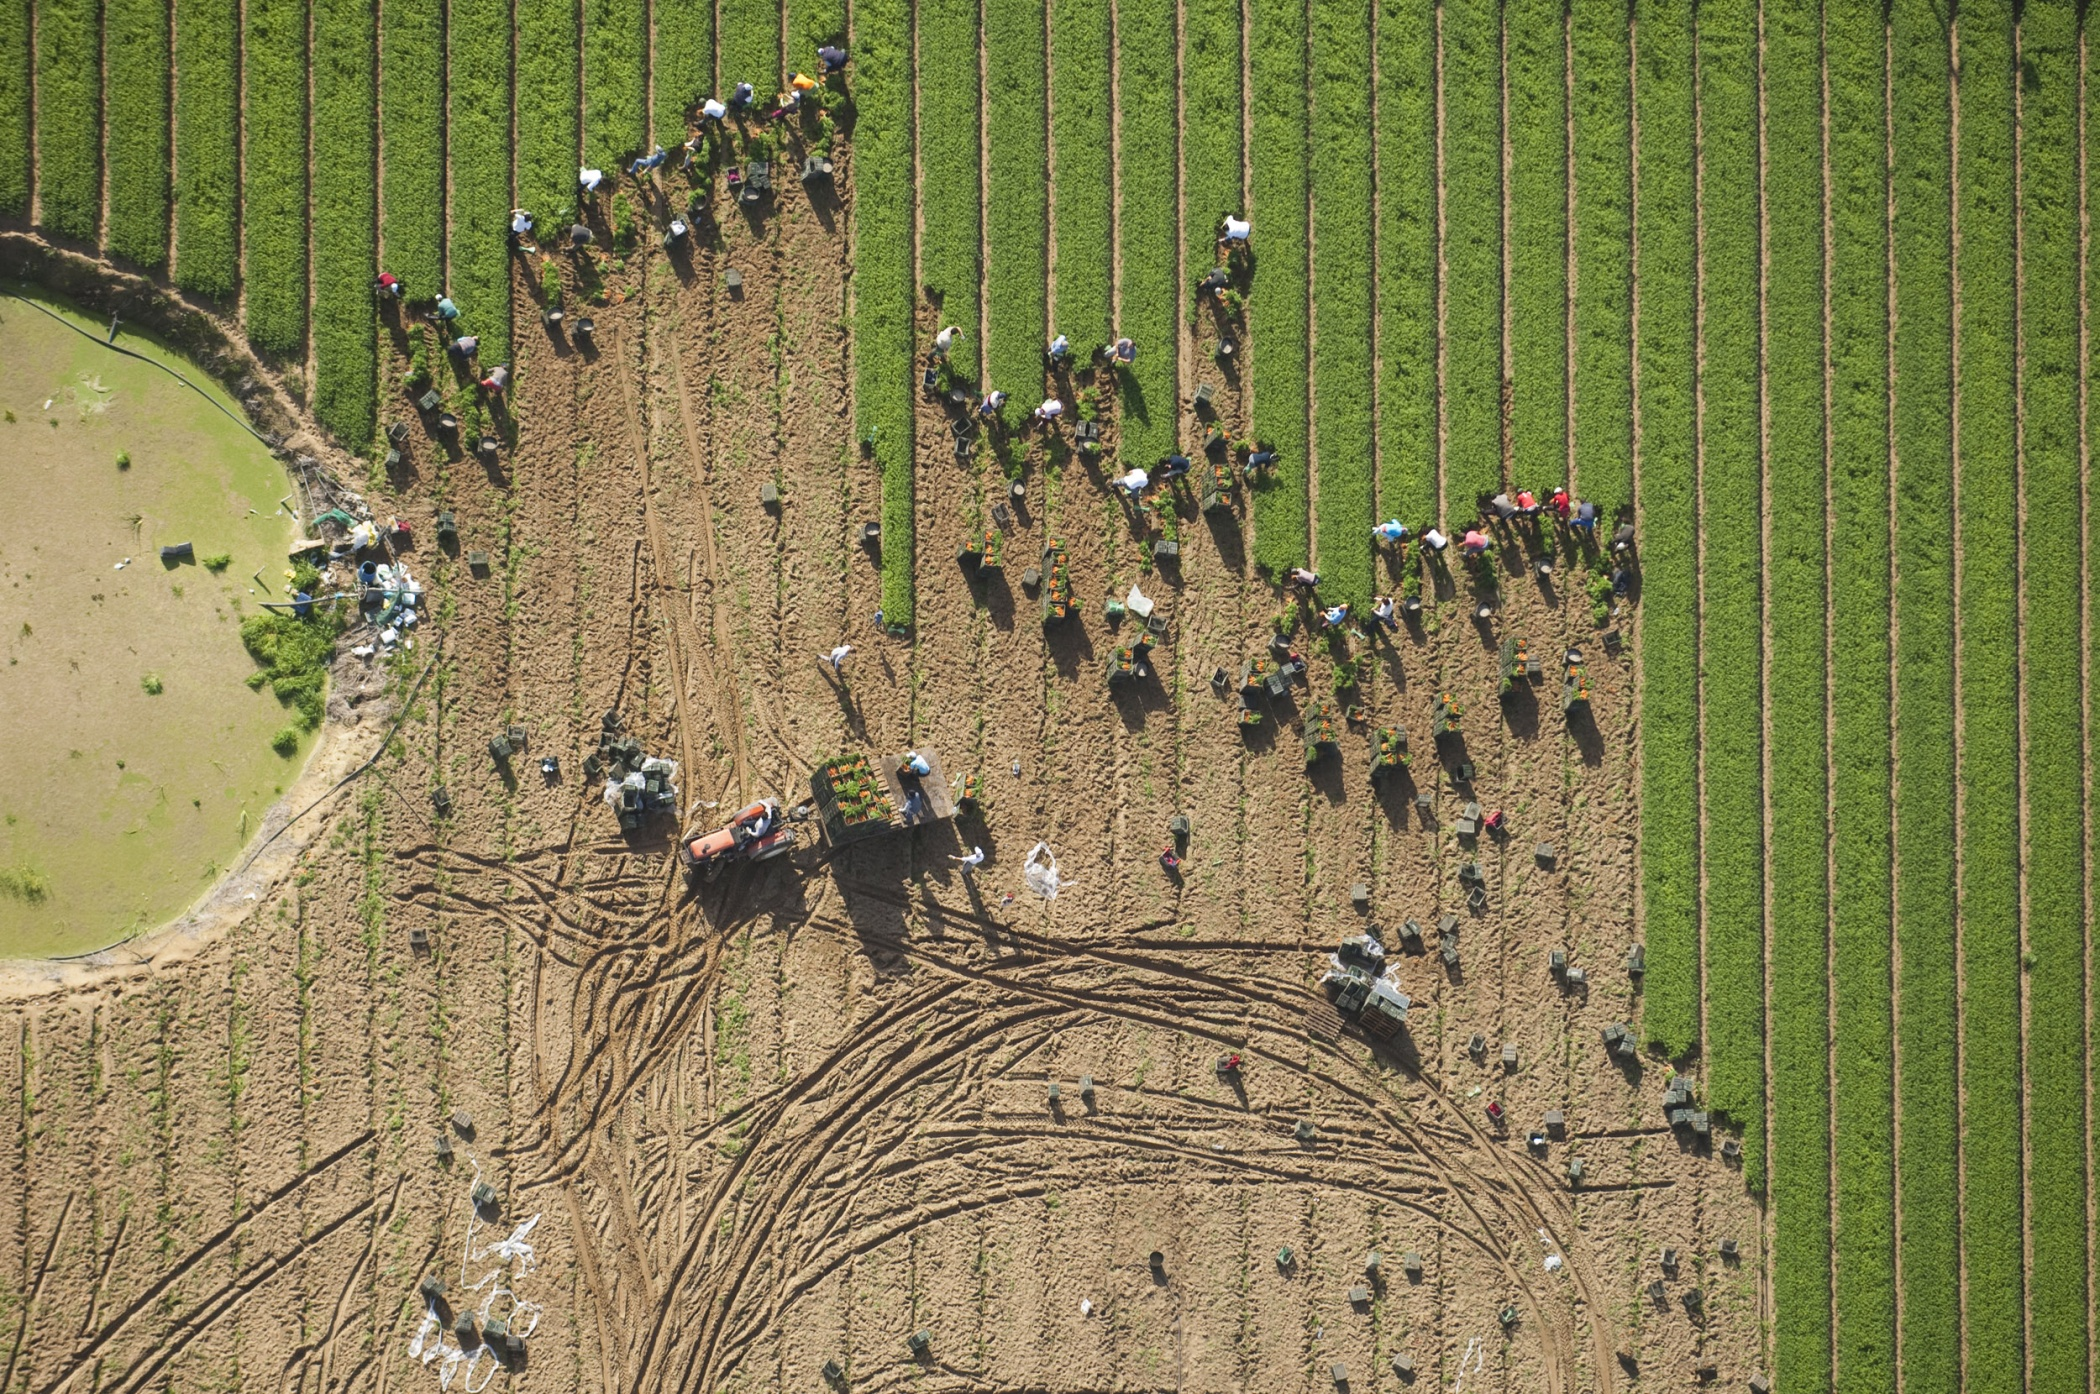 Zanahorias - Prints 1. Aerial nature - Hector Garrido, Aerial and human photography